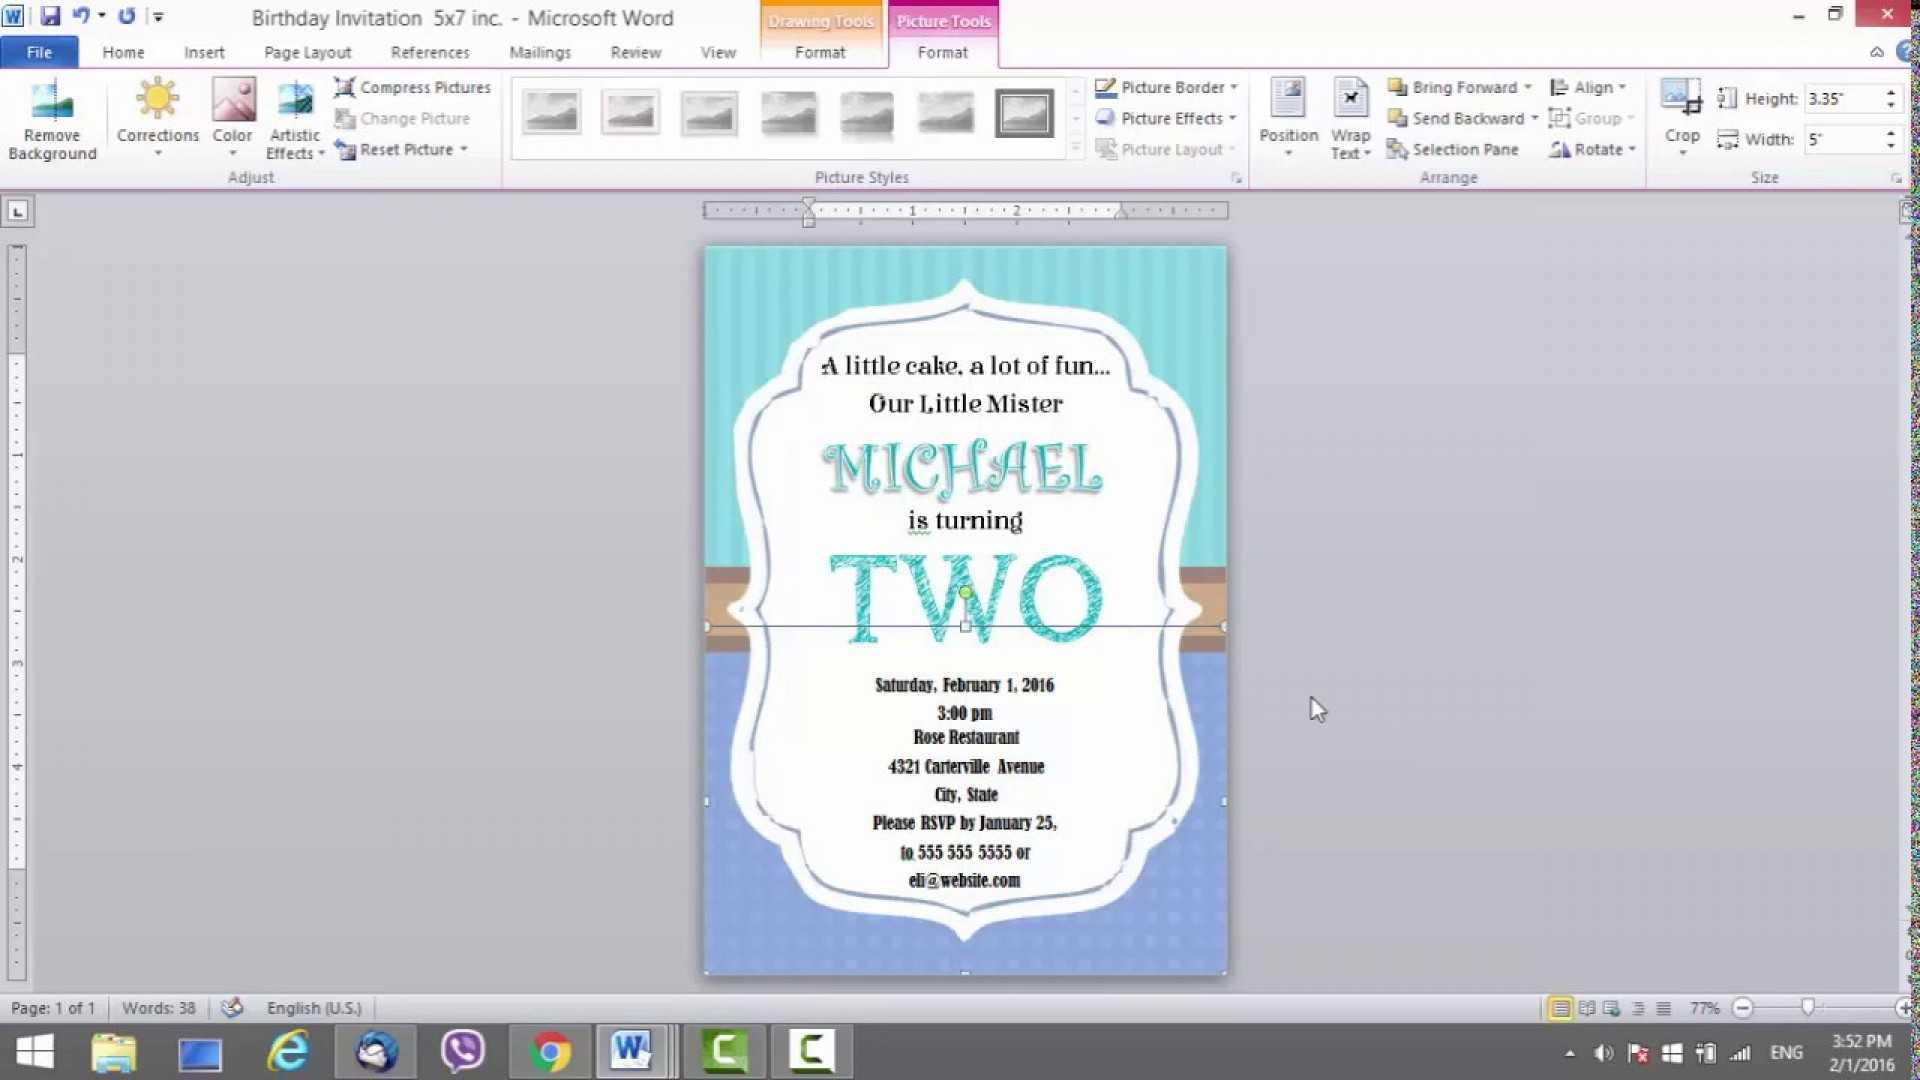 001 Template Ideas Microsoft Word Birthday Card Best With Regard To Birthday Card Publisher Template